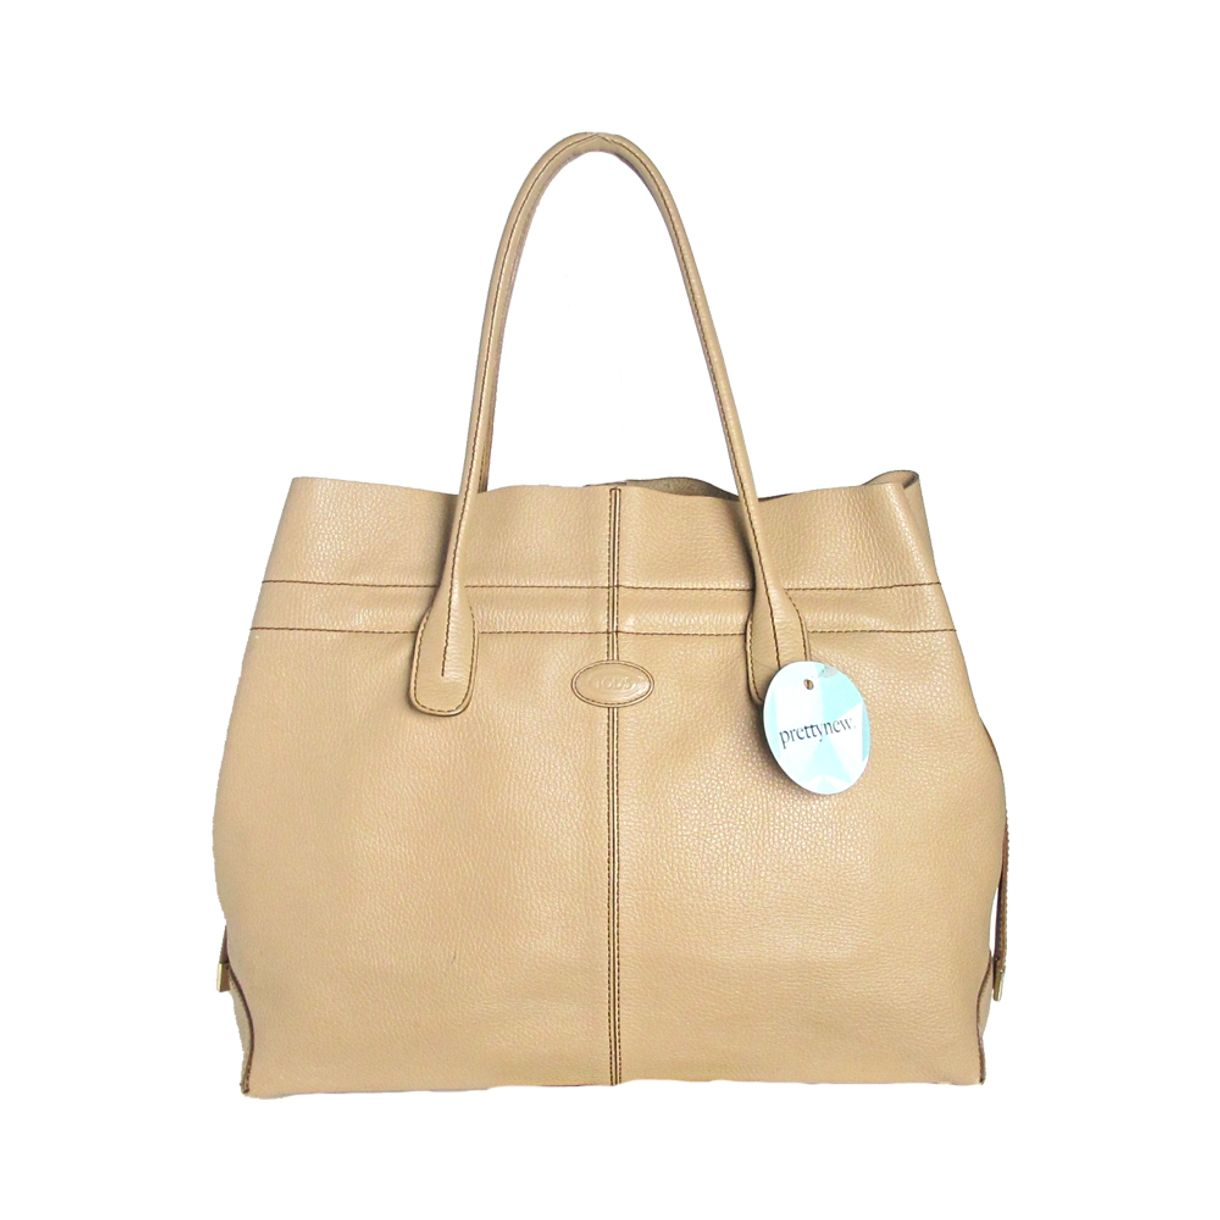 Bolsa-Tods-Couro-Bege